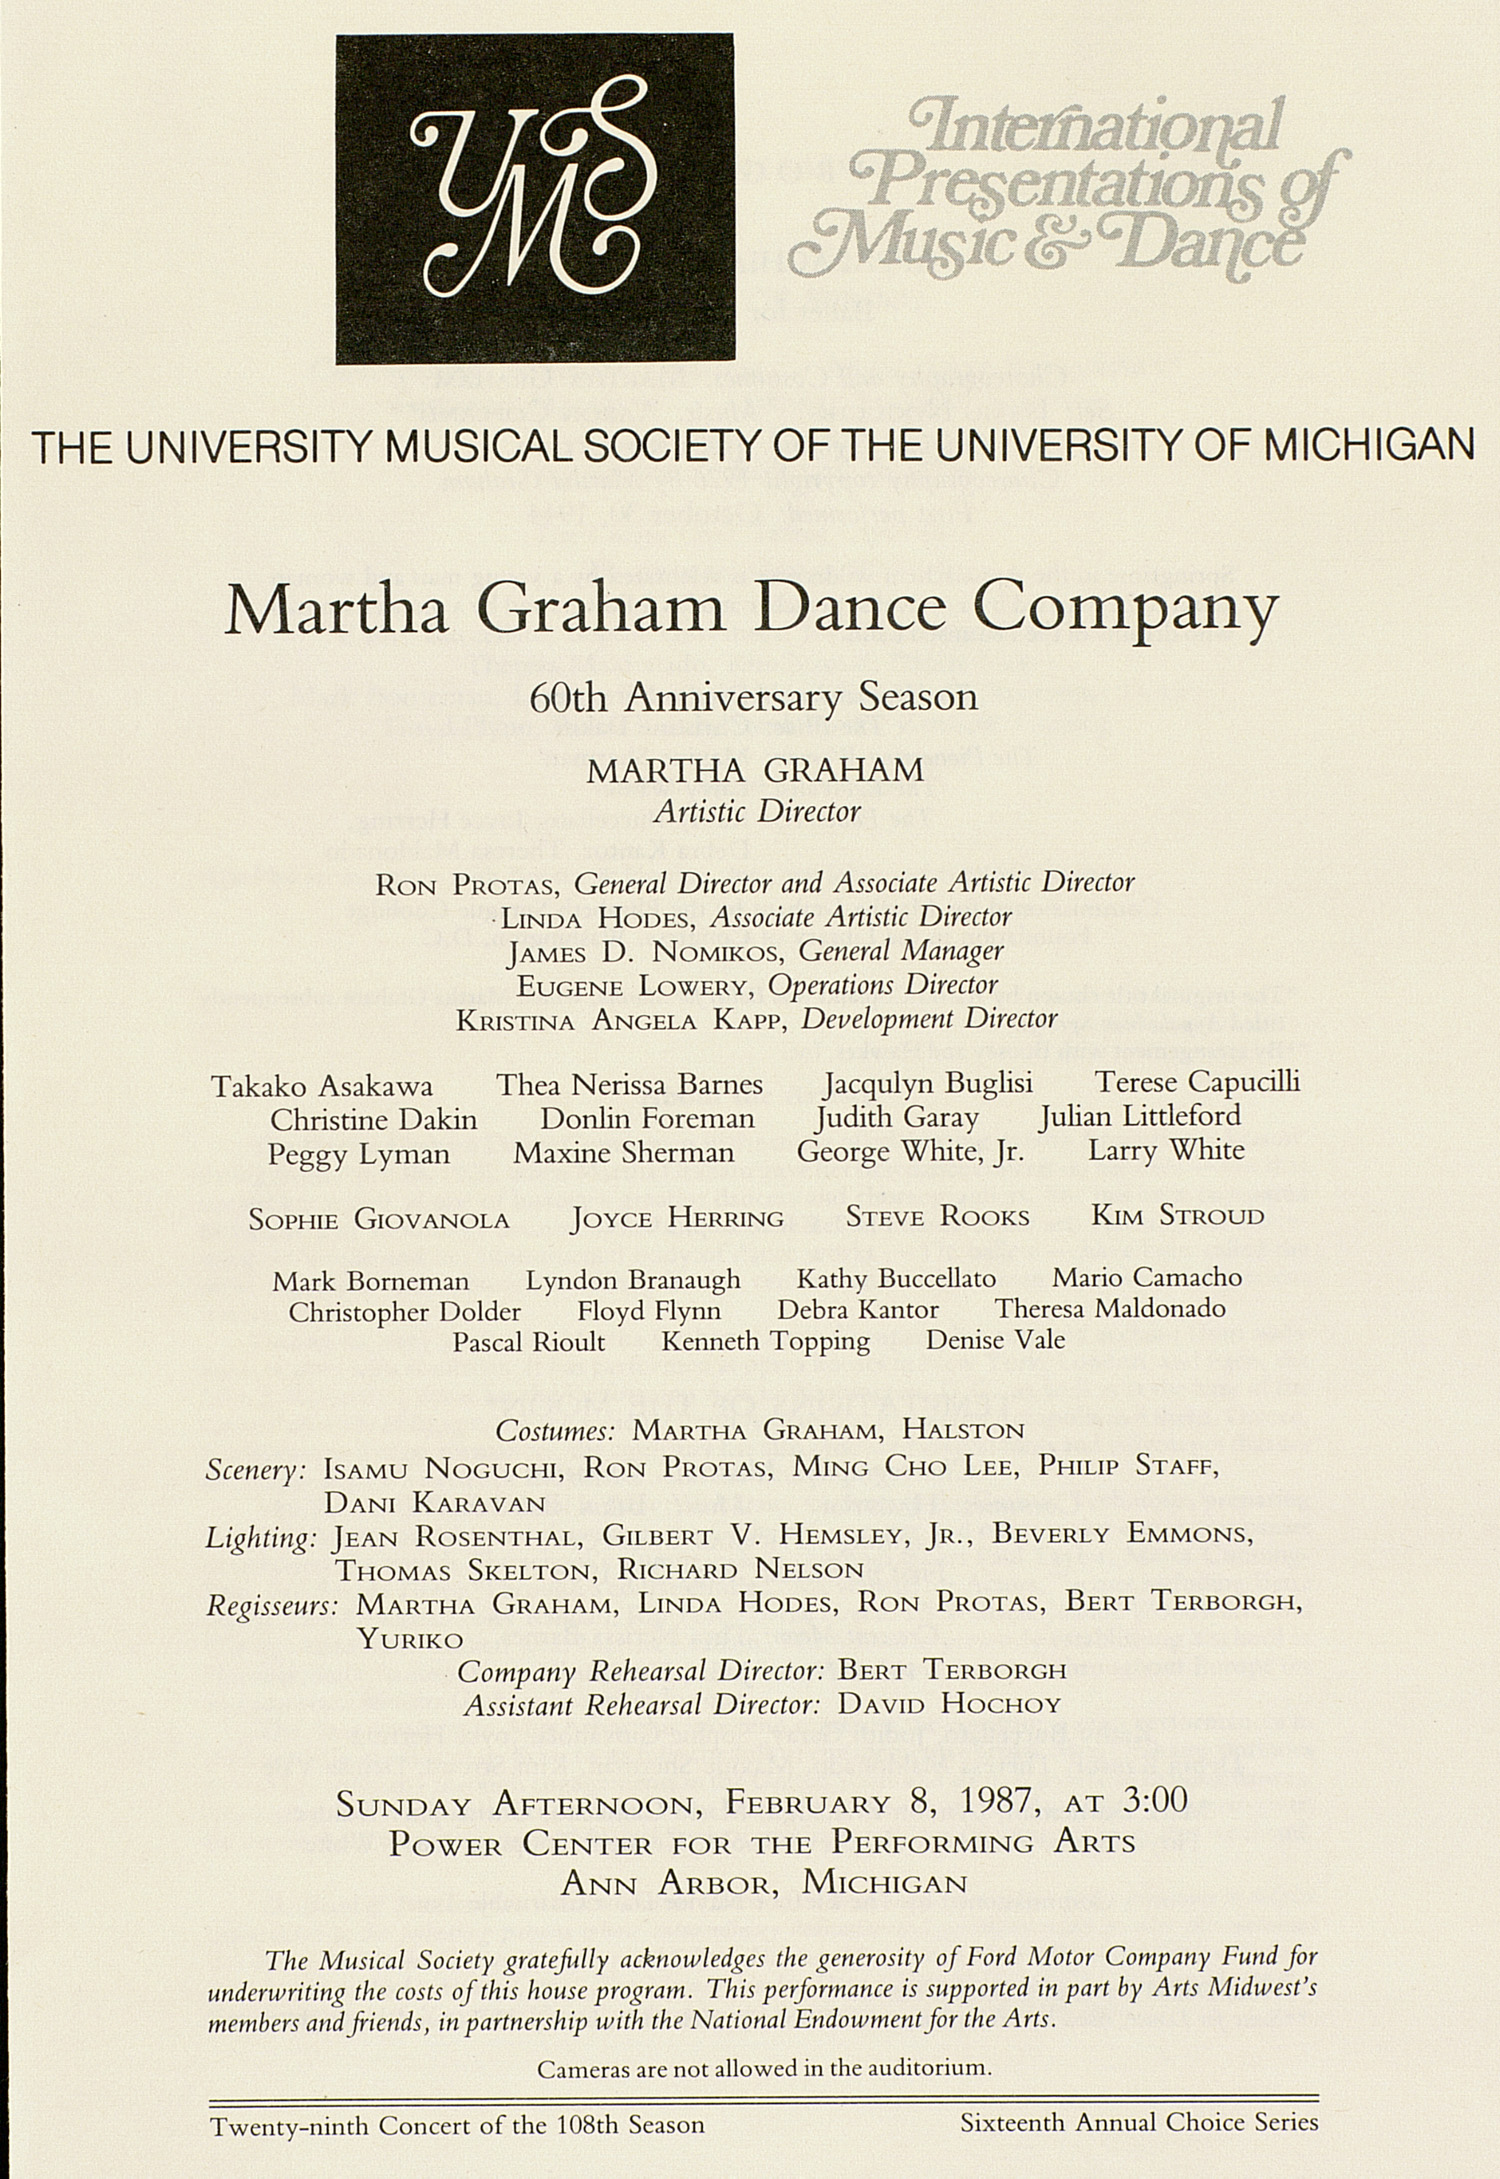 UMS Concert Program, February 8, 1987: International Presentations Of Music & Dance -- Martha Graham Dance Company image